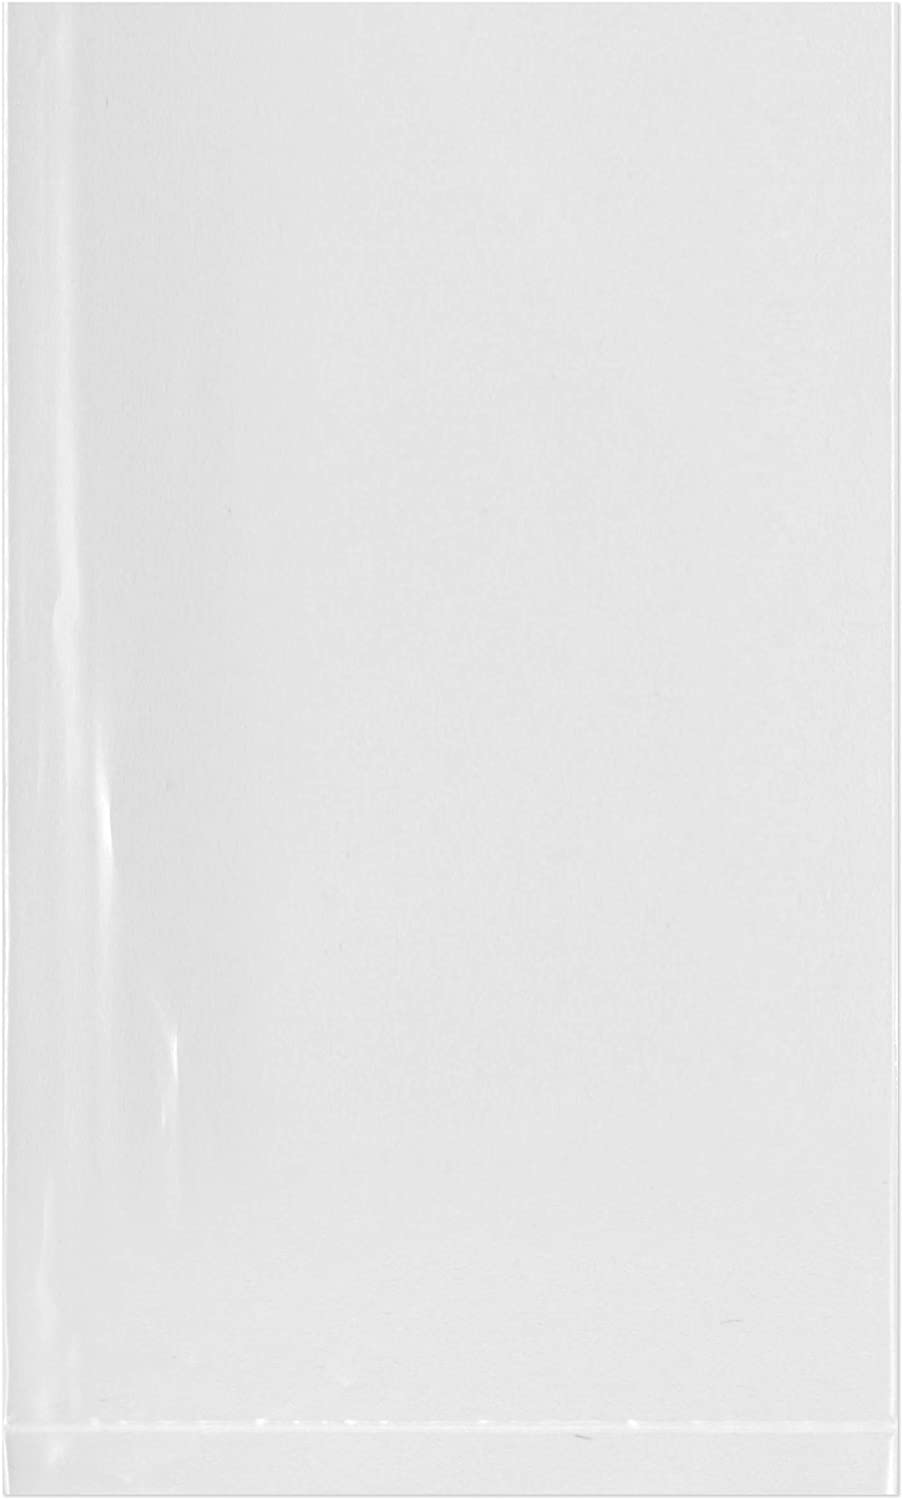 Plymor Flat Open Clear Plastic Poly Bags, 3 Mil, 3